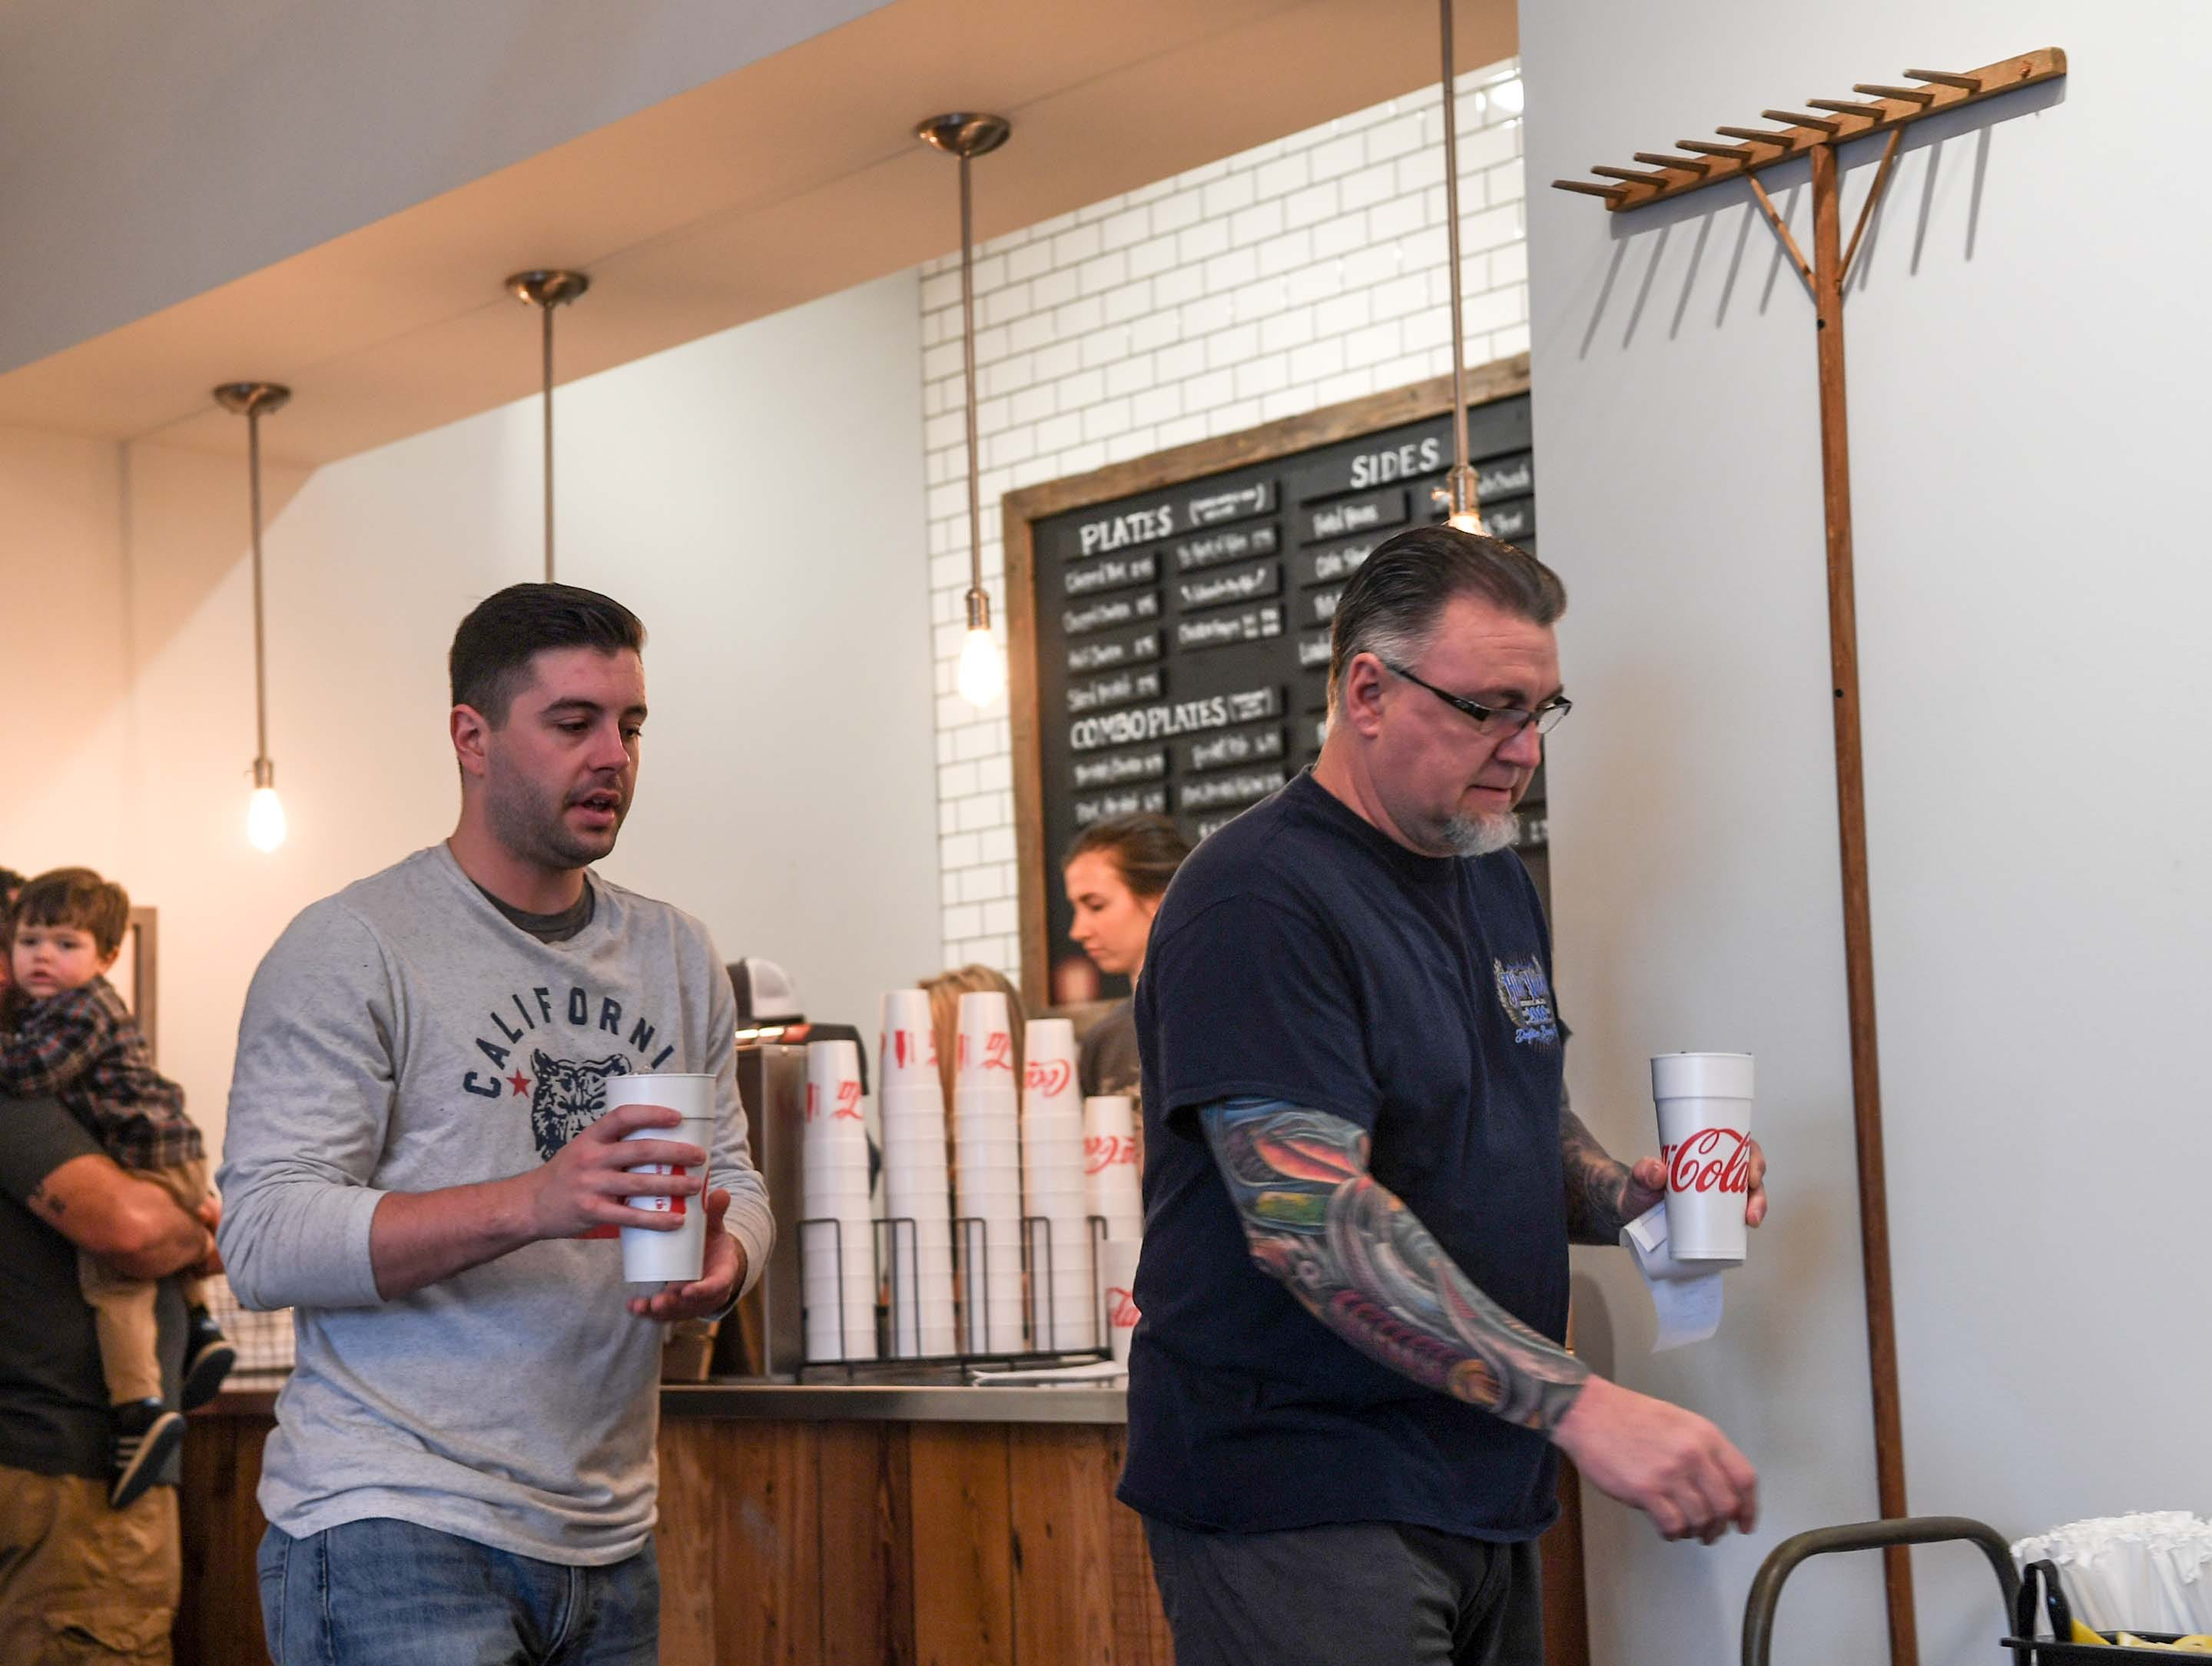 Steele Ramey, left, and his father Scott Ramey of Anderson the first in line on opening day of Smokin' Pig on Evergreen Road in Anderson, move along after ordering their lunch Thursday, February 28, 2019. The new location is the fourth, with locations in Pendleton, Williamston, and Easley.